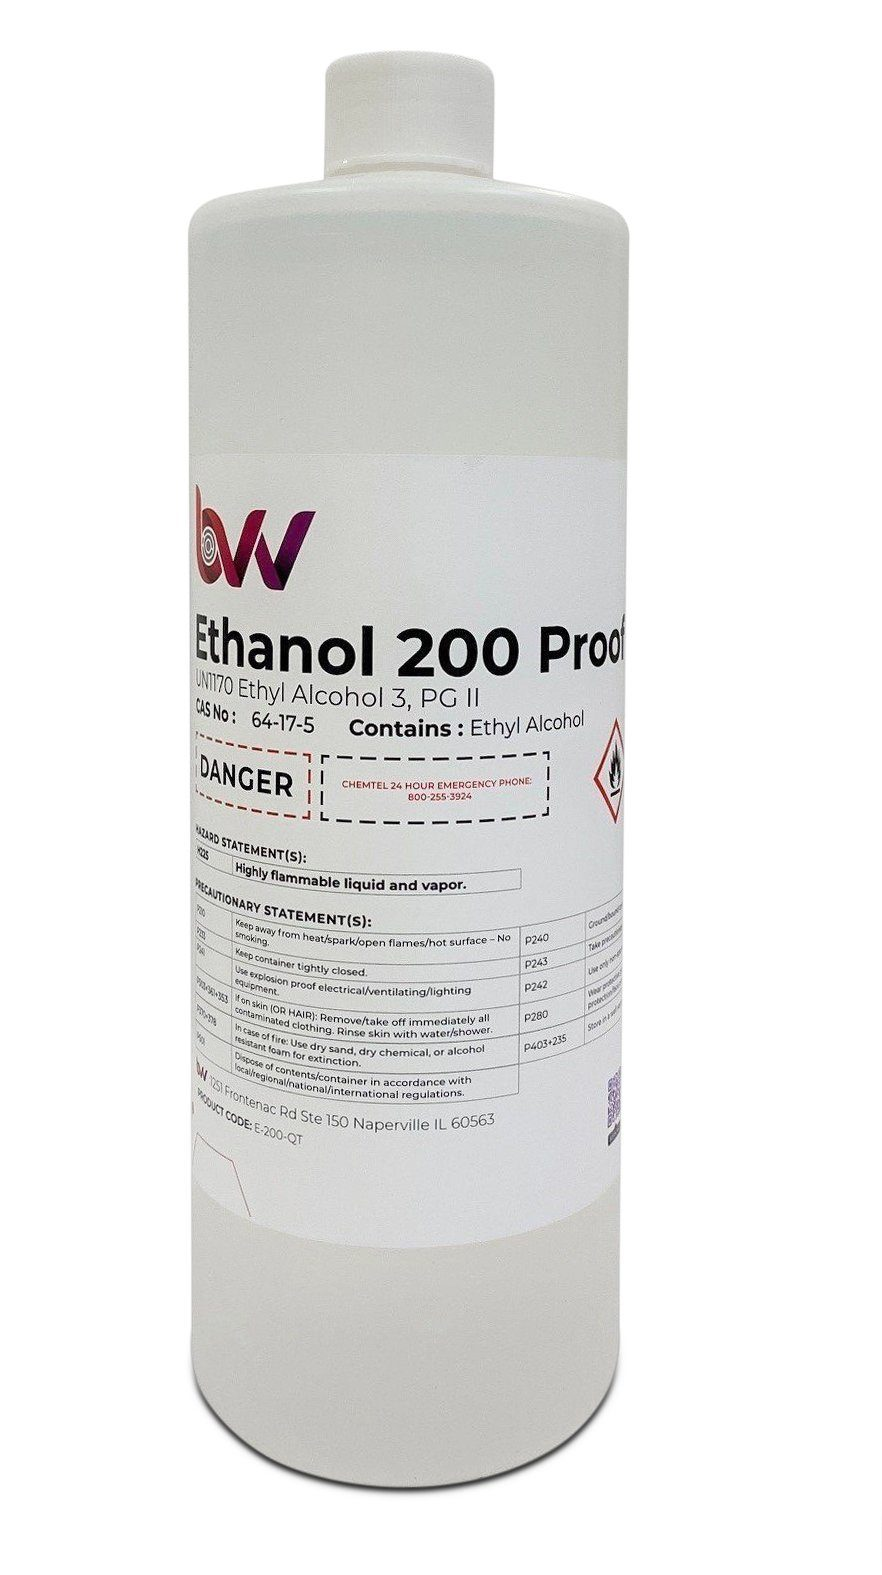 BVV Food & Lab Grade Ethanol 200 Proof - 99.97% - USP-NF, Kosher - Excise Tax Included BVV 1 Quart